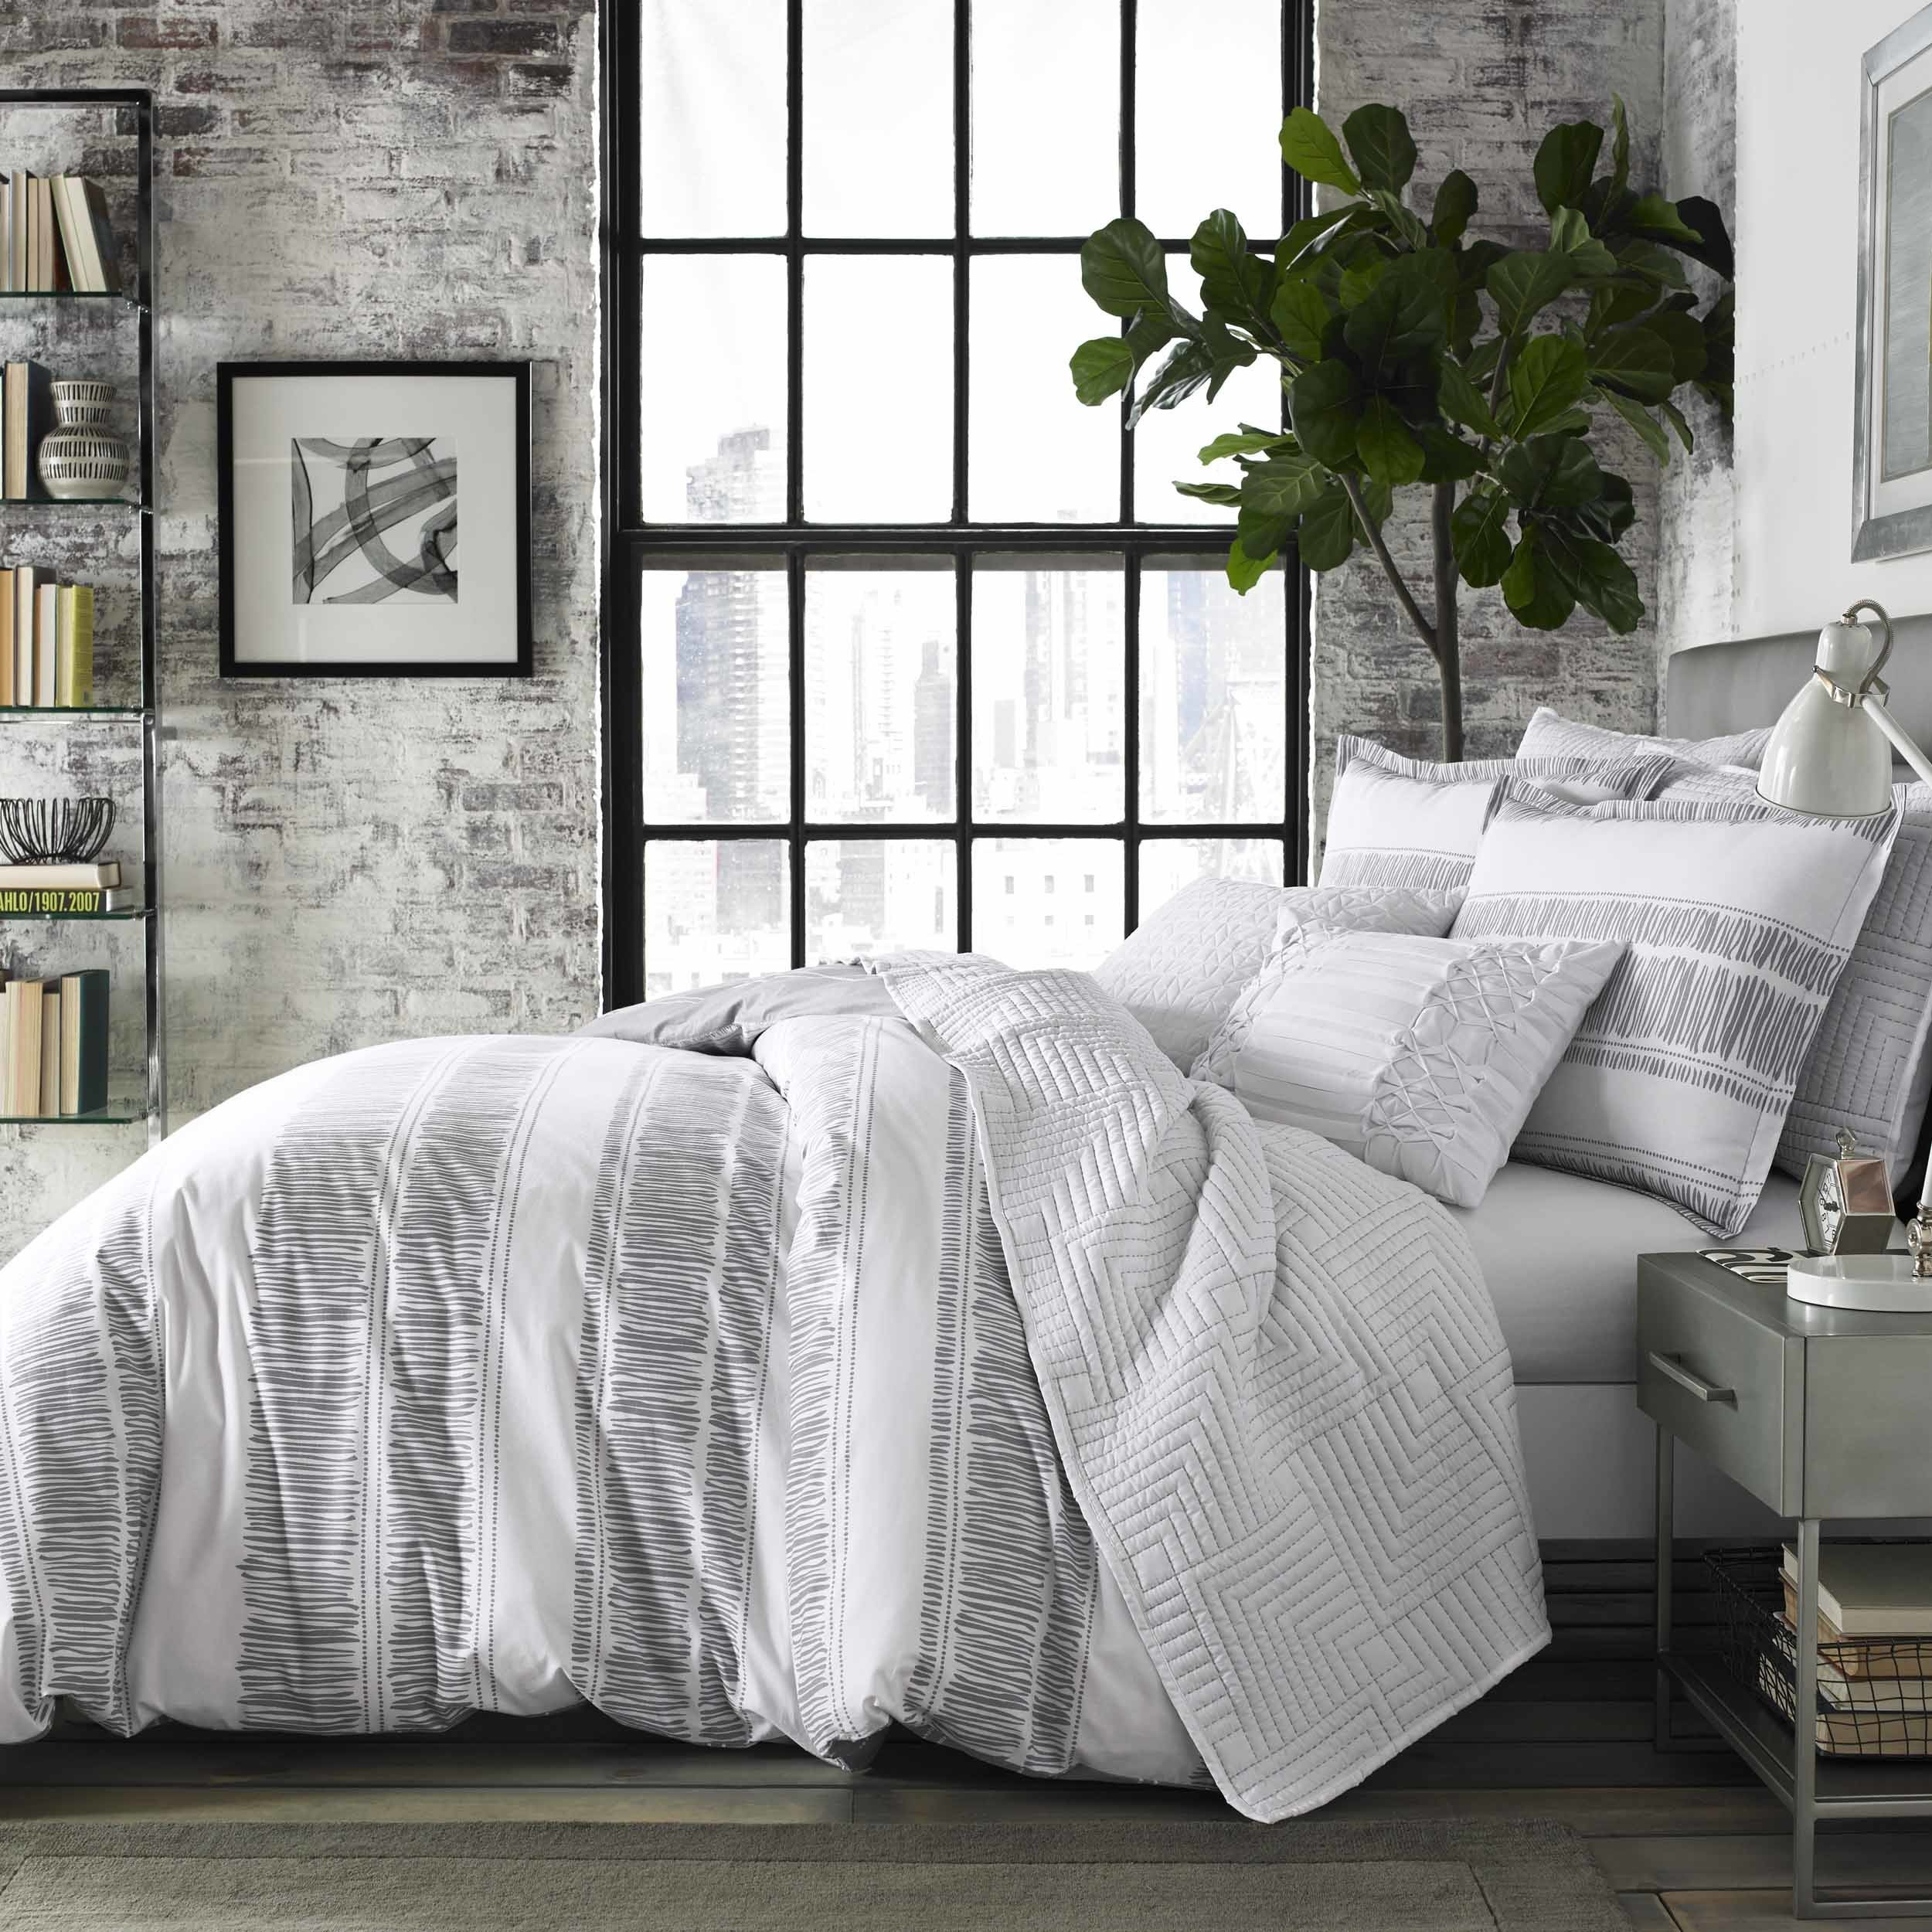 l comforter lamour free amour bath on eternel product piece bedding overstock bed set lucia shipping com